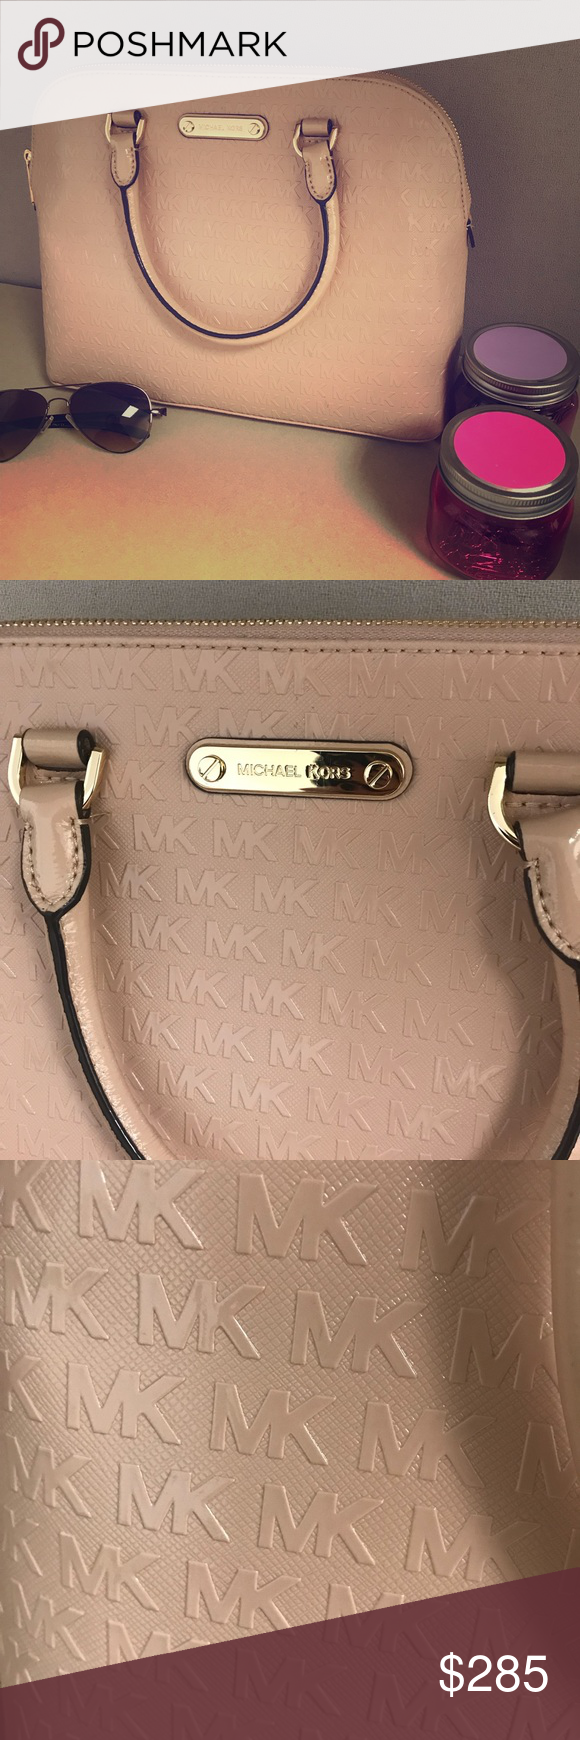 880af26e1d791b Spotted while shopping on Poshmark: Michael Kors blush Cindy Dome satchel! # poshmark #fashion #shopping #style #Michael Kors #Handbags